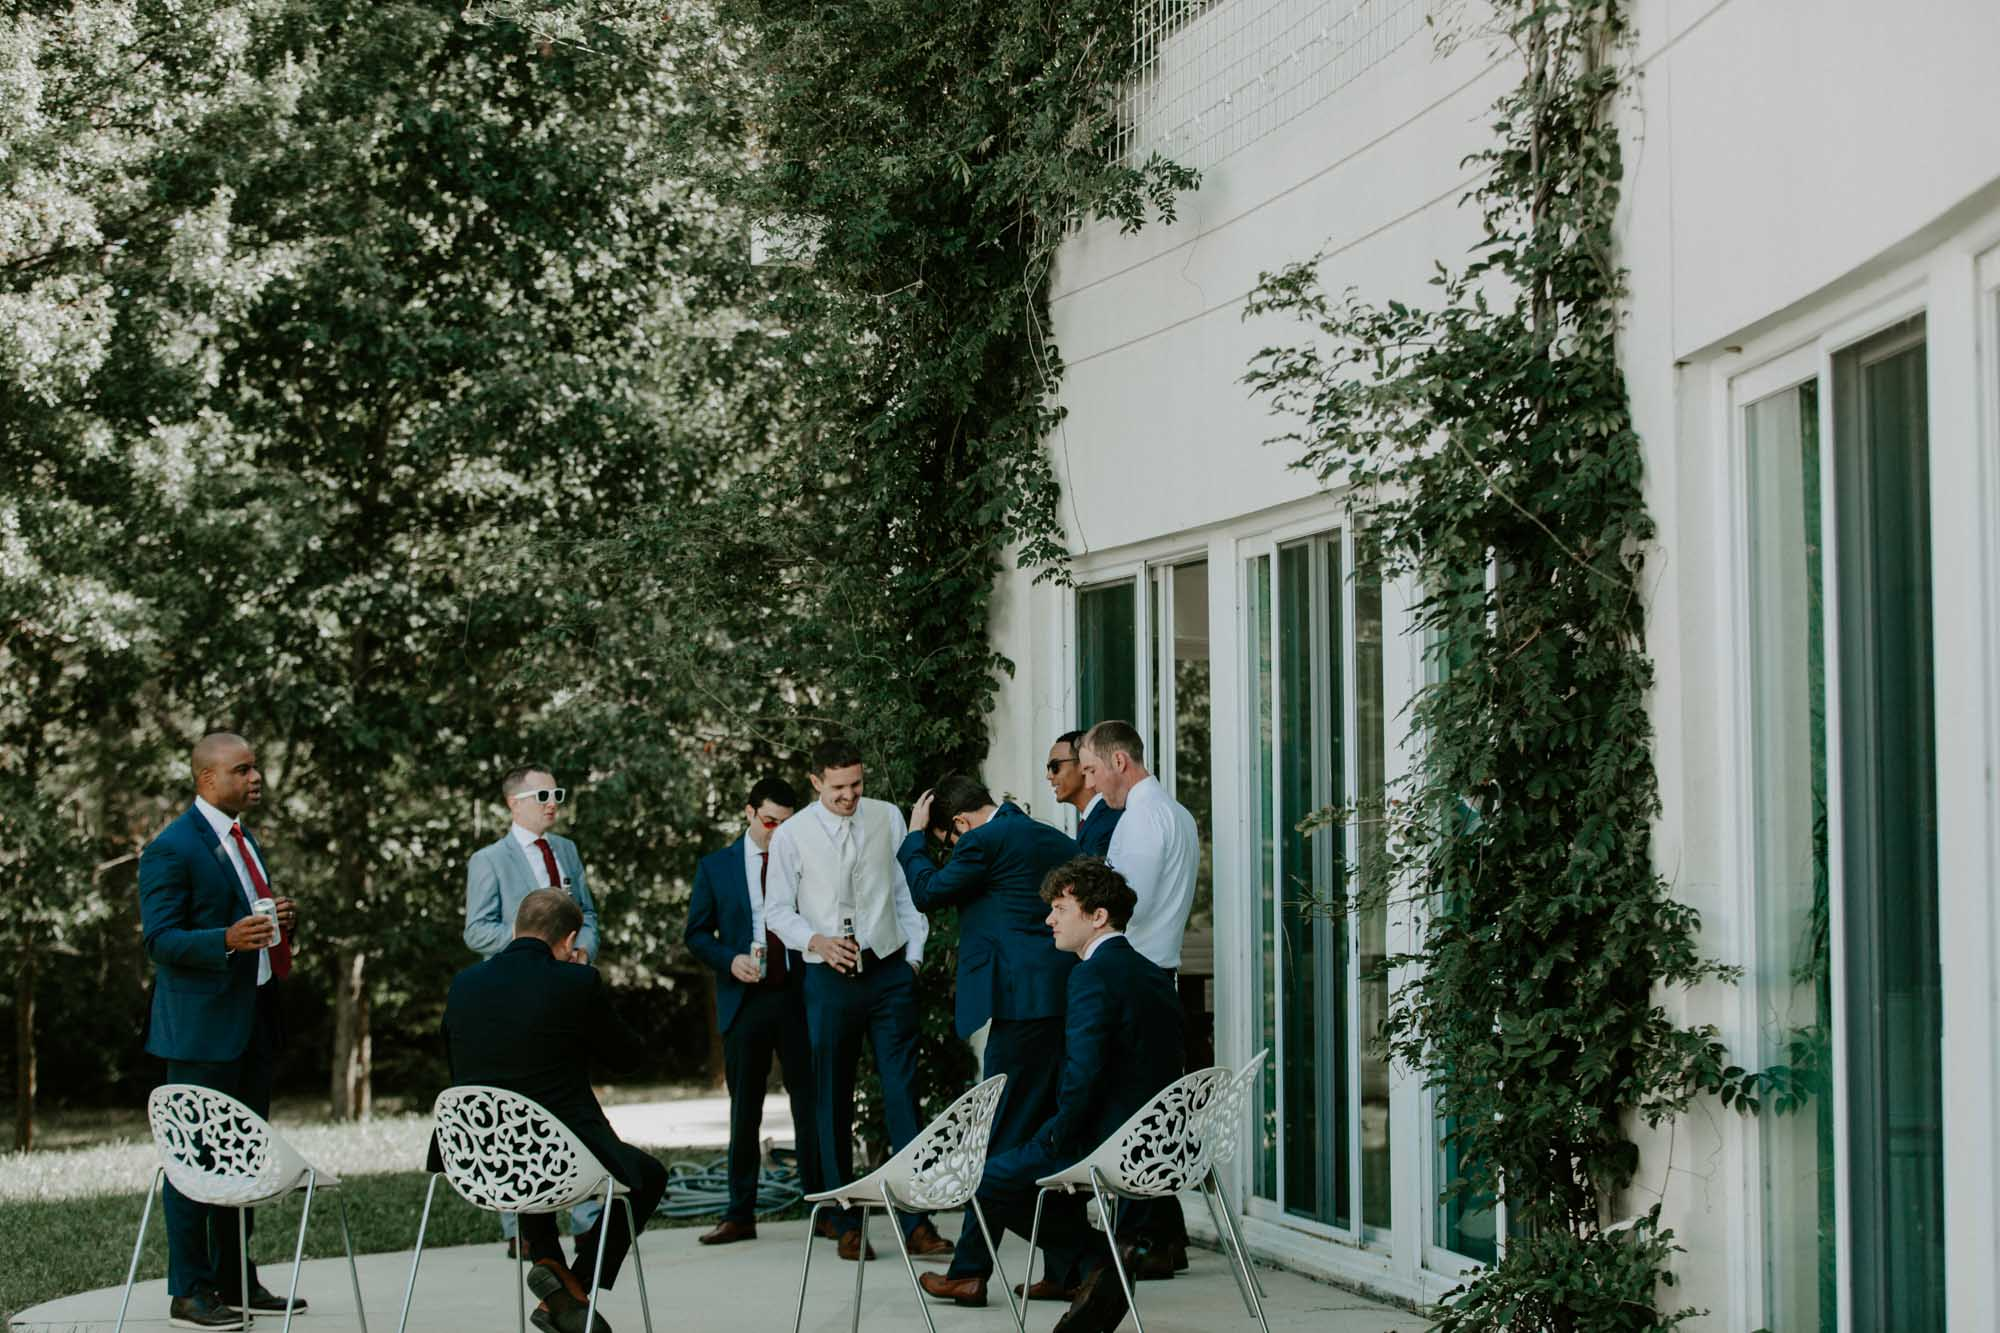 Prairie glass house wedding coulter brittany wright photographs blaine kelsey wright